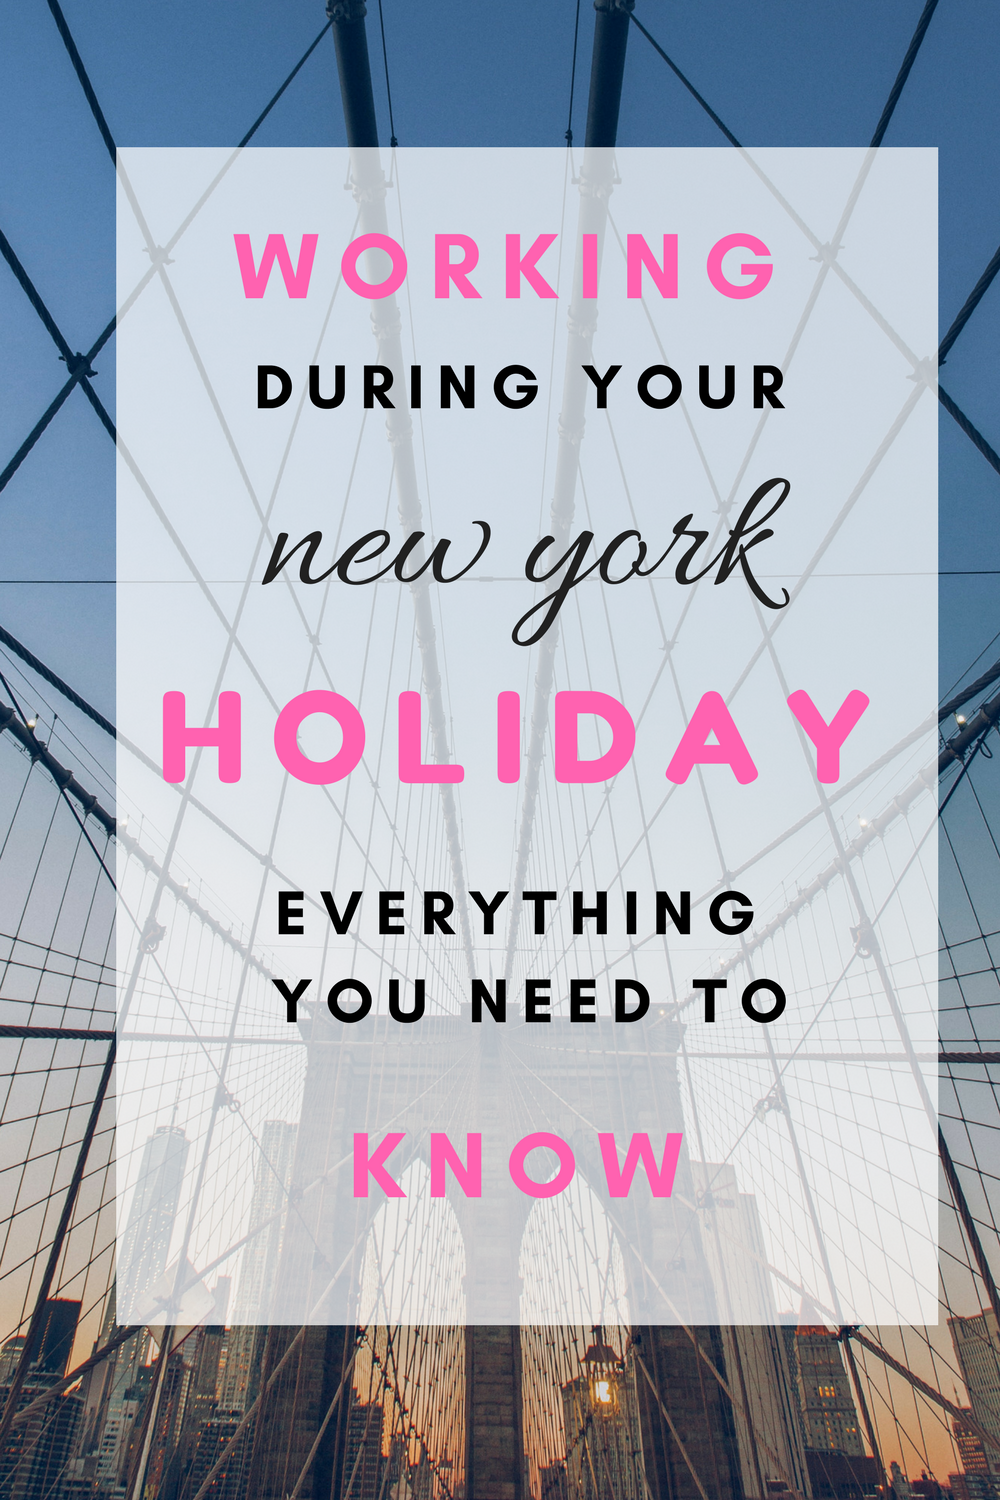 Working during your new york holiday